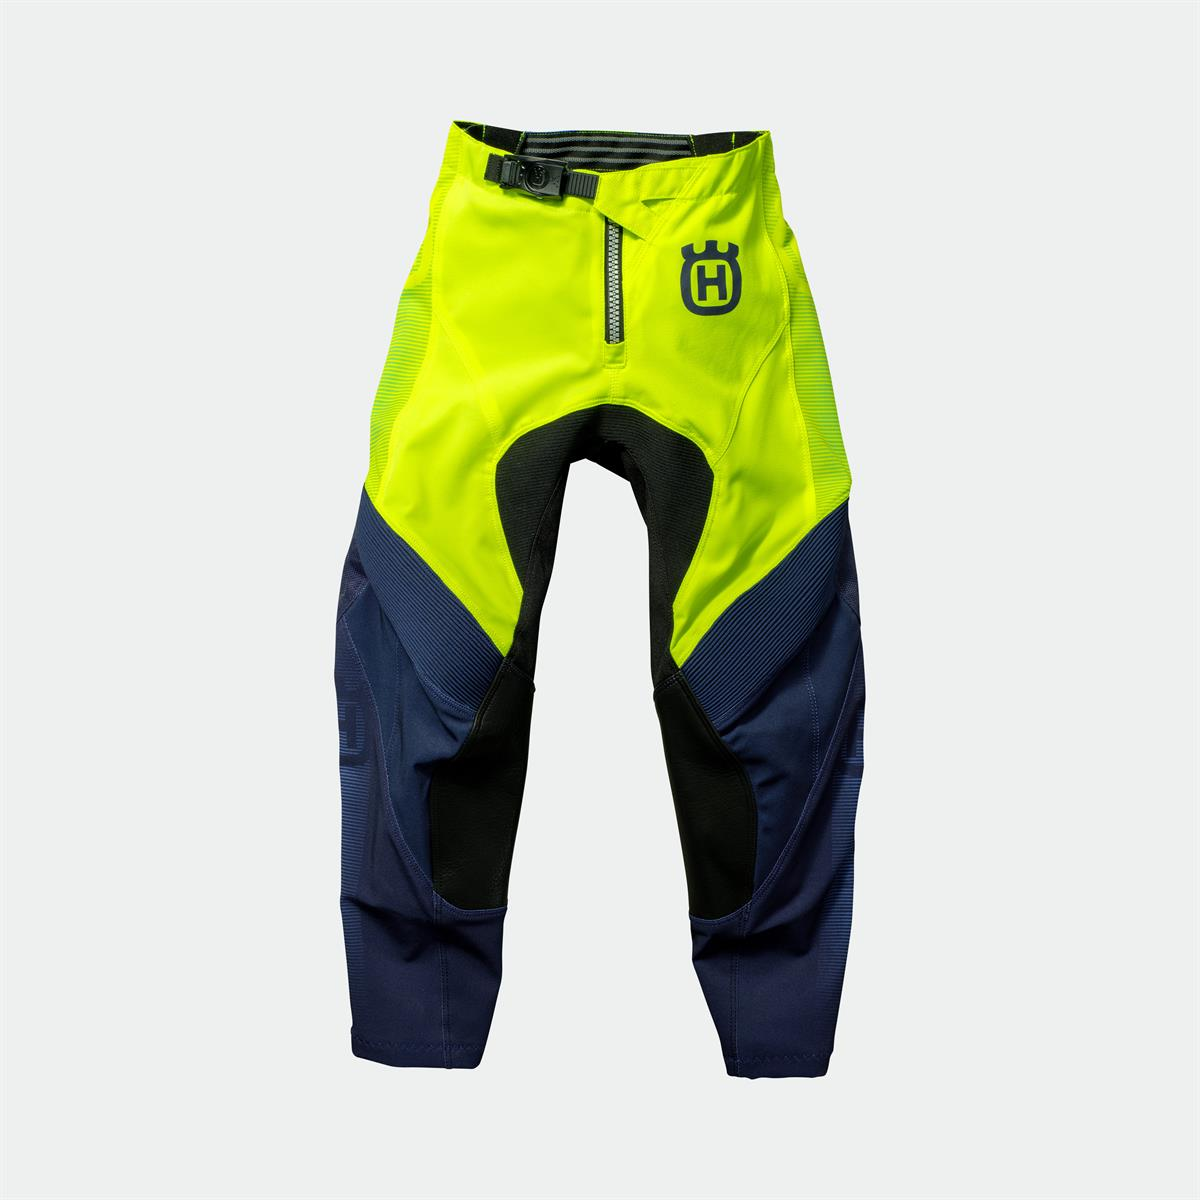 Husqvarna Motorcycles - 2019 Functional Clothing Kids Collection - KIDS RAILED PANTS